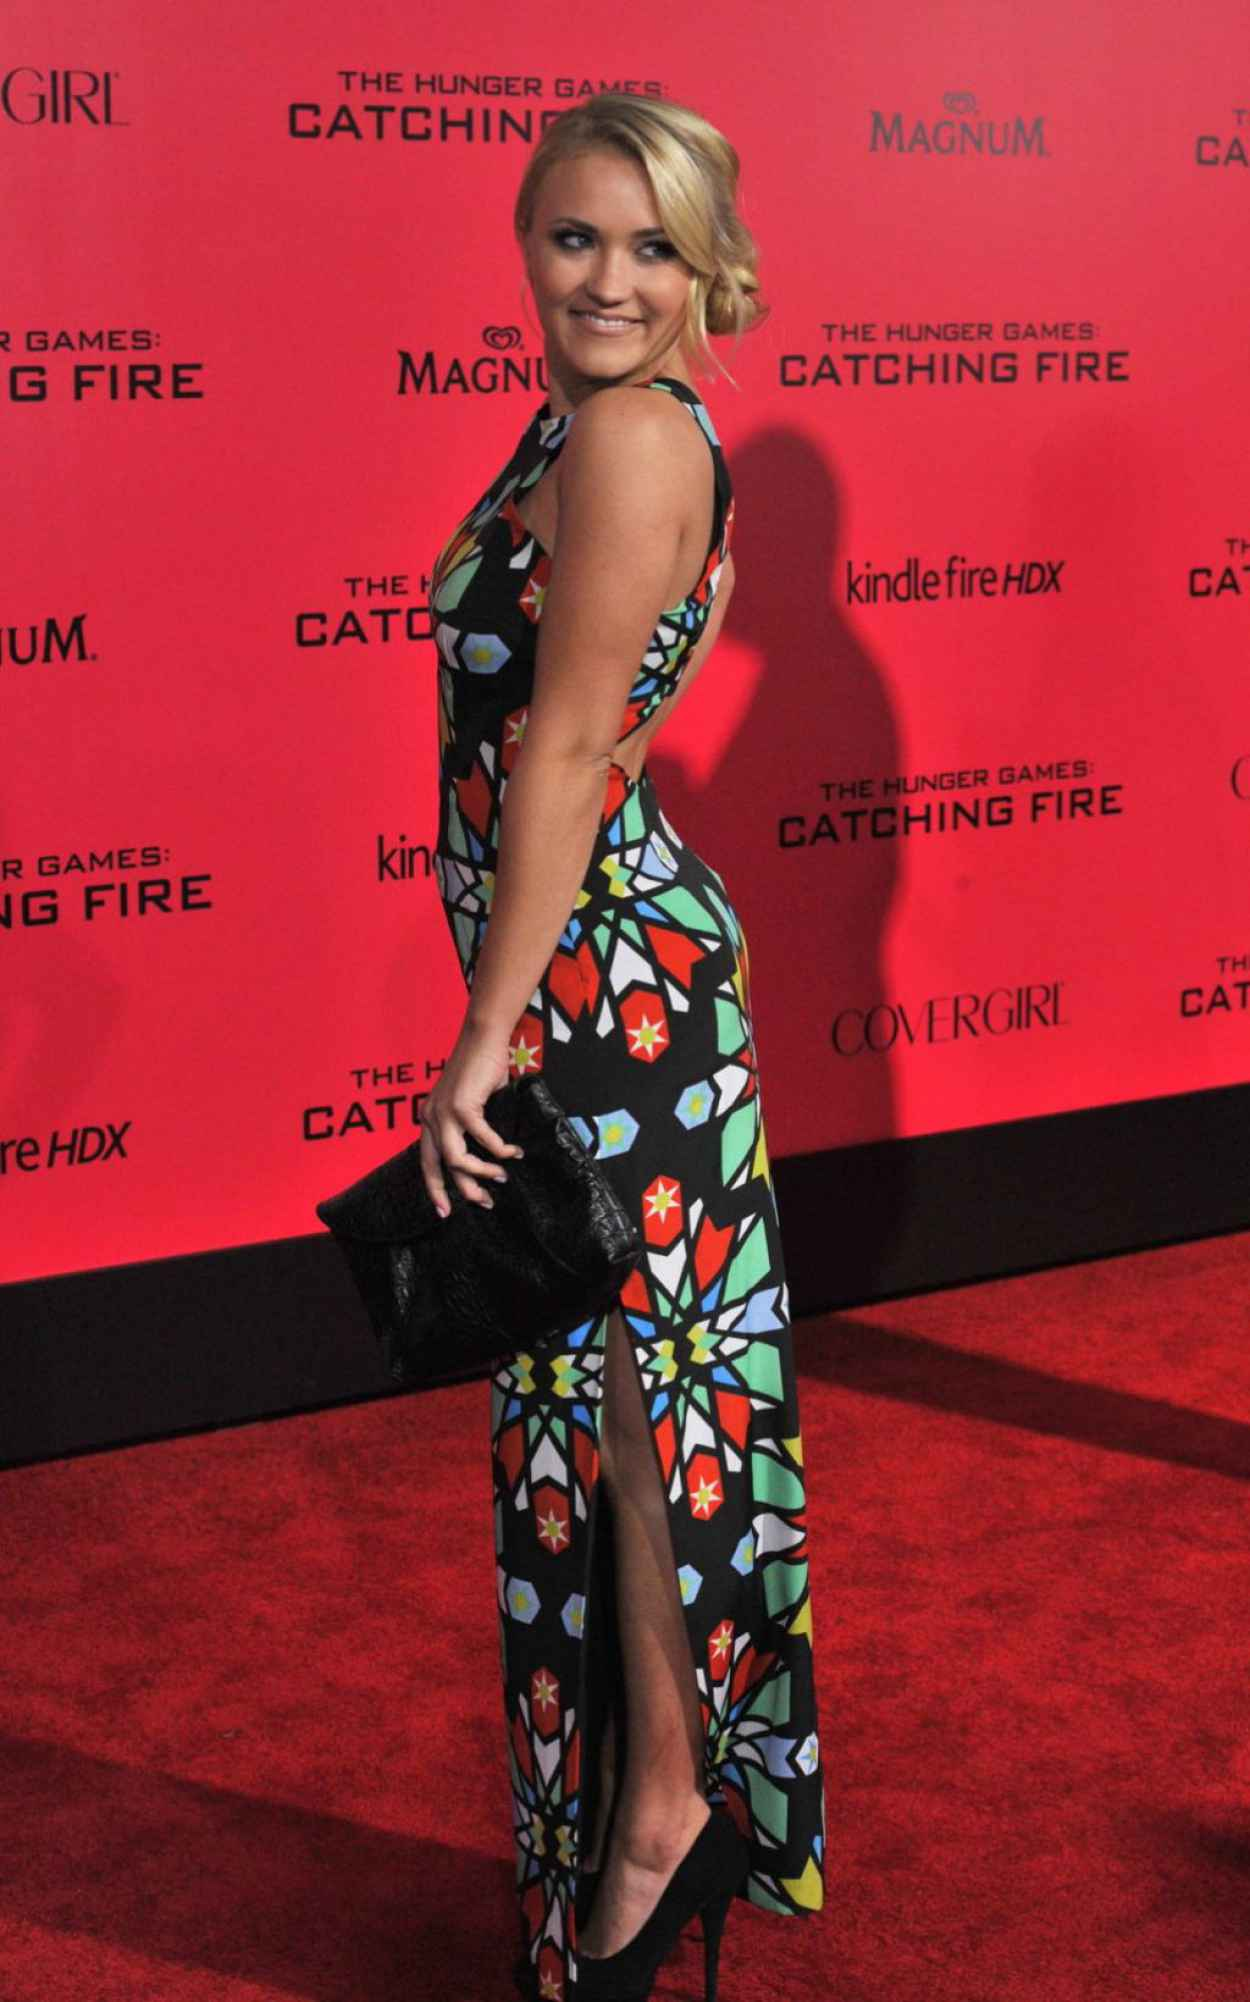 Emily Osment - THE HUNGER GAMES: CATCHING FIRE Premiere in Los Angeles-5